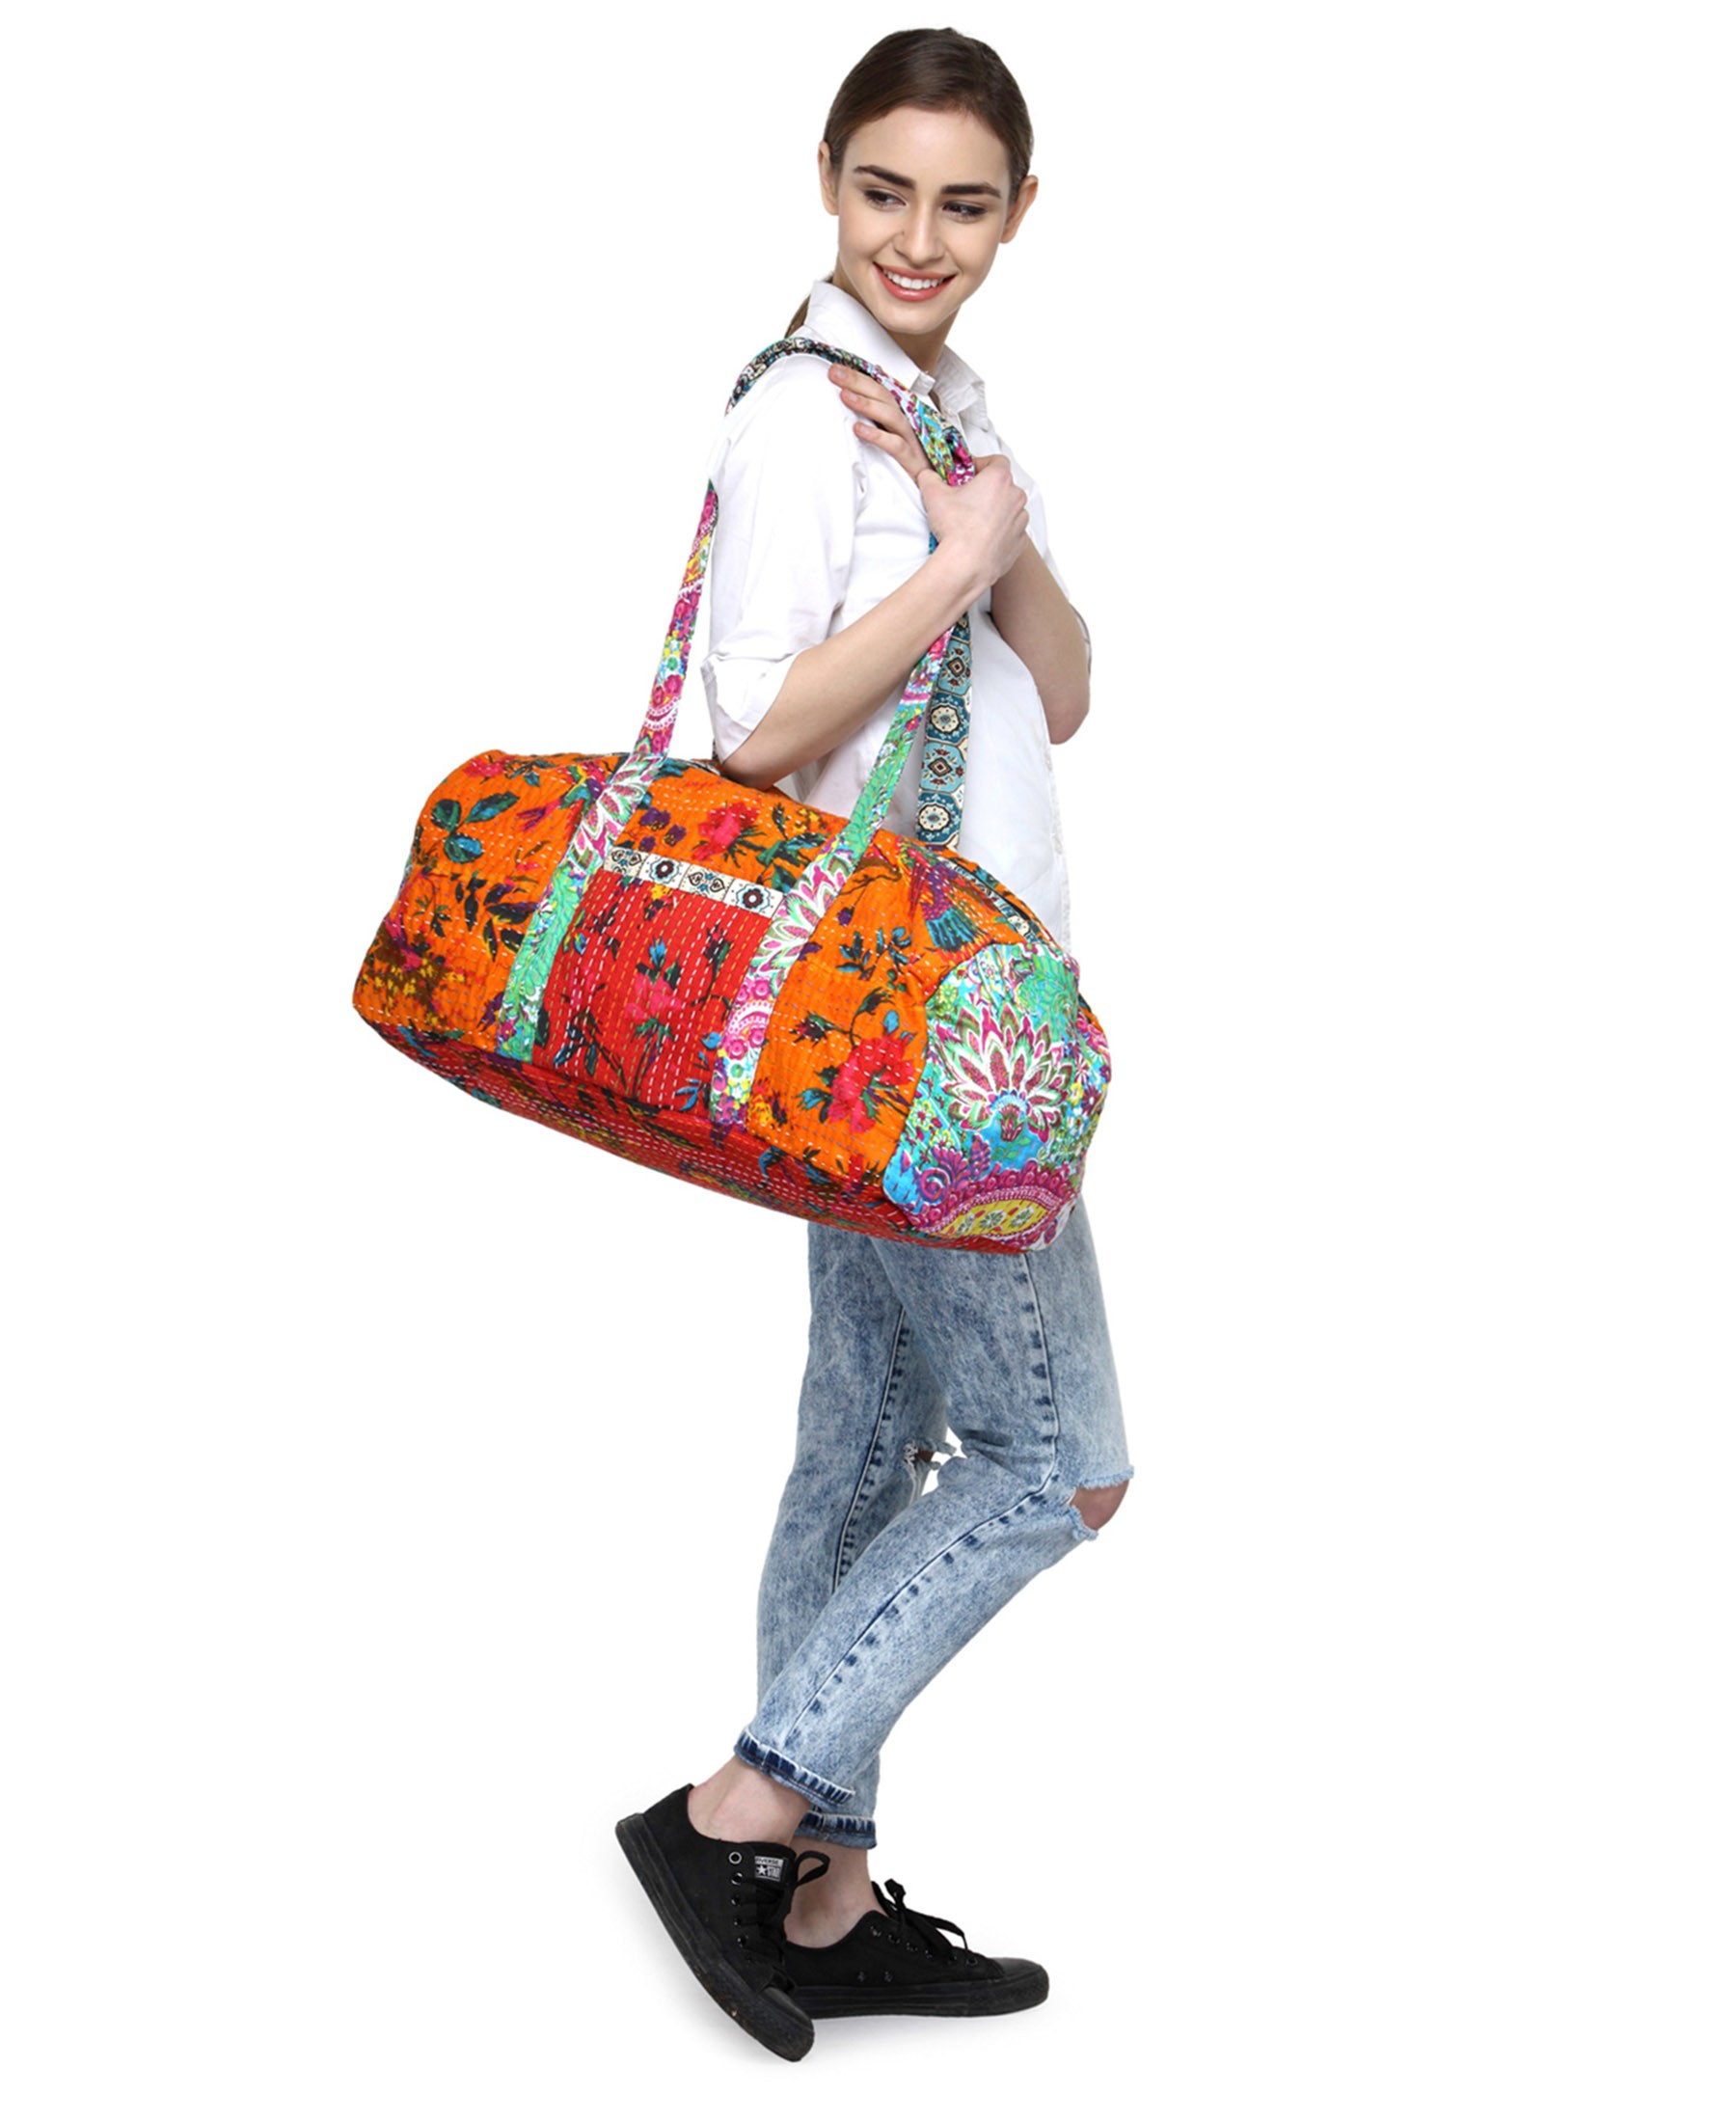 The House of Tara Vintage Fabric Patchwork Duffle Travel Shoulder Bag HTD 130